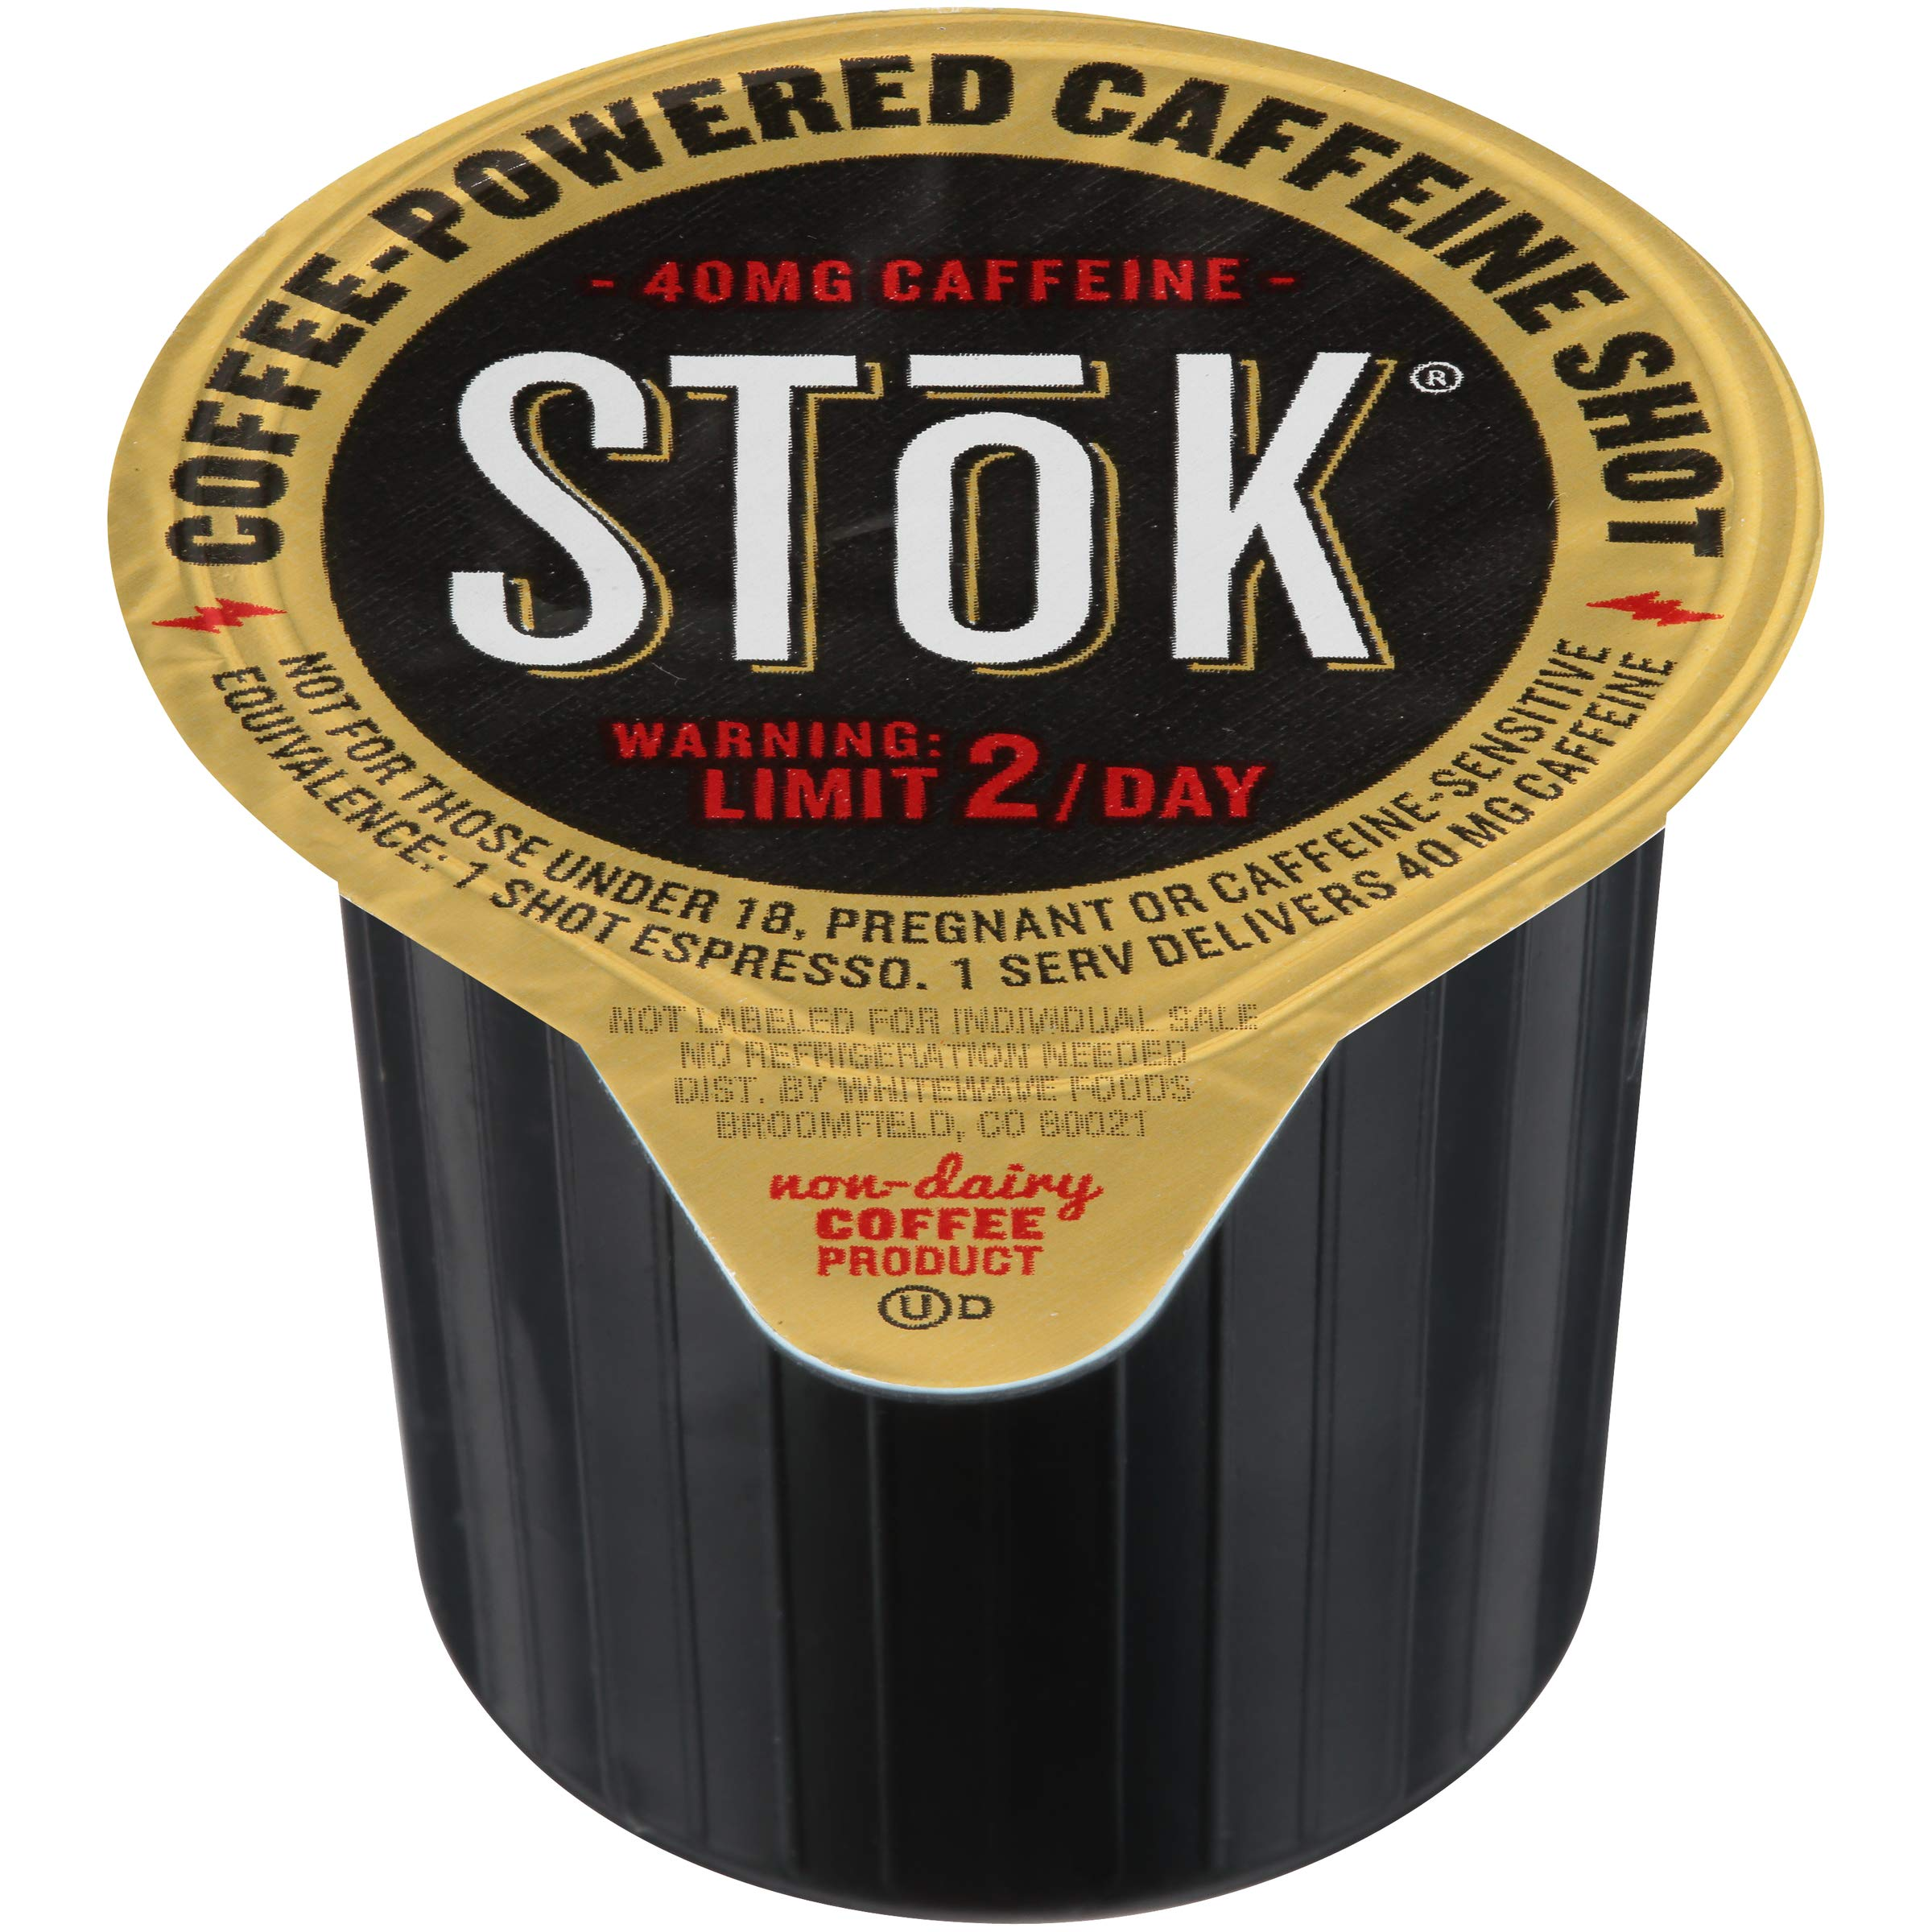 SToK Caffeinated Black Coffee Shots, 264 Single-Serving Shots, Single-Serve Shot of Unsweetened Coffee, Add to Coffee for Extra Caffeine, 40mg Caffeine (Packaging May vary) by SToK